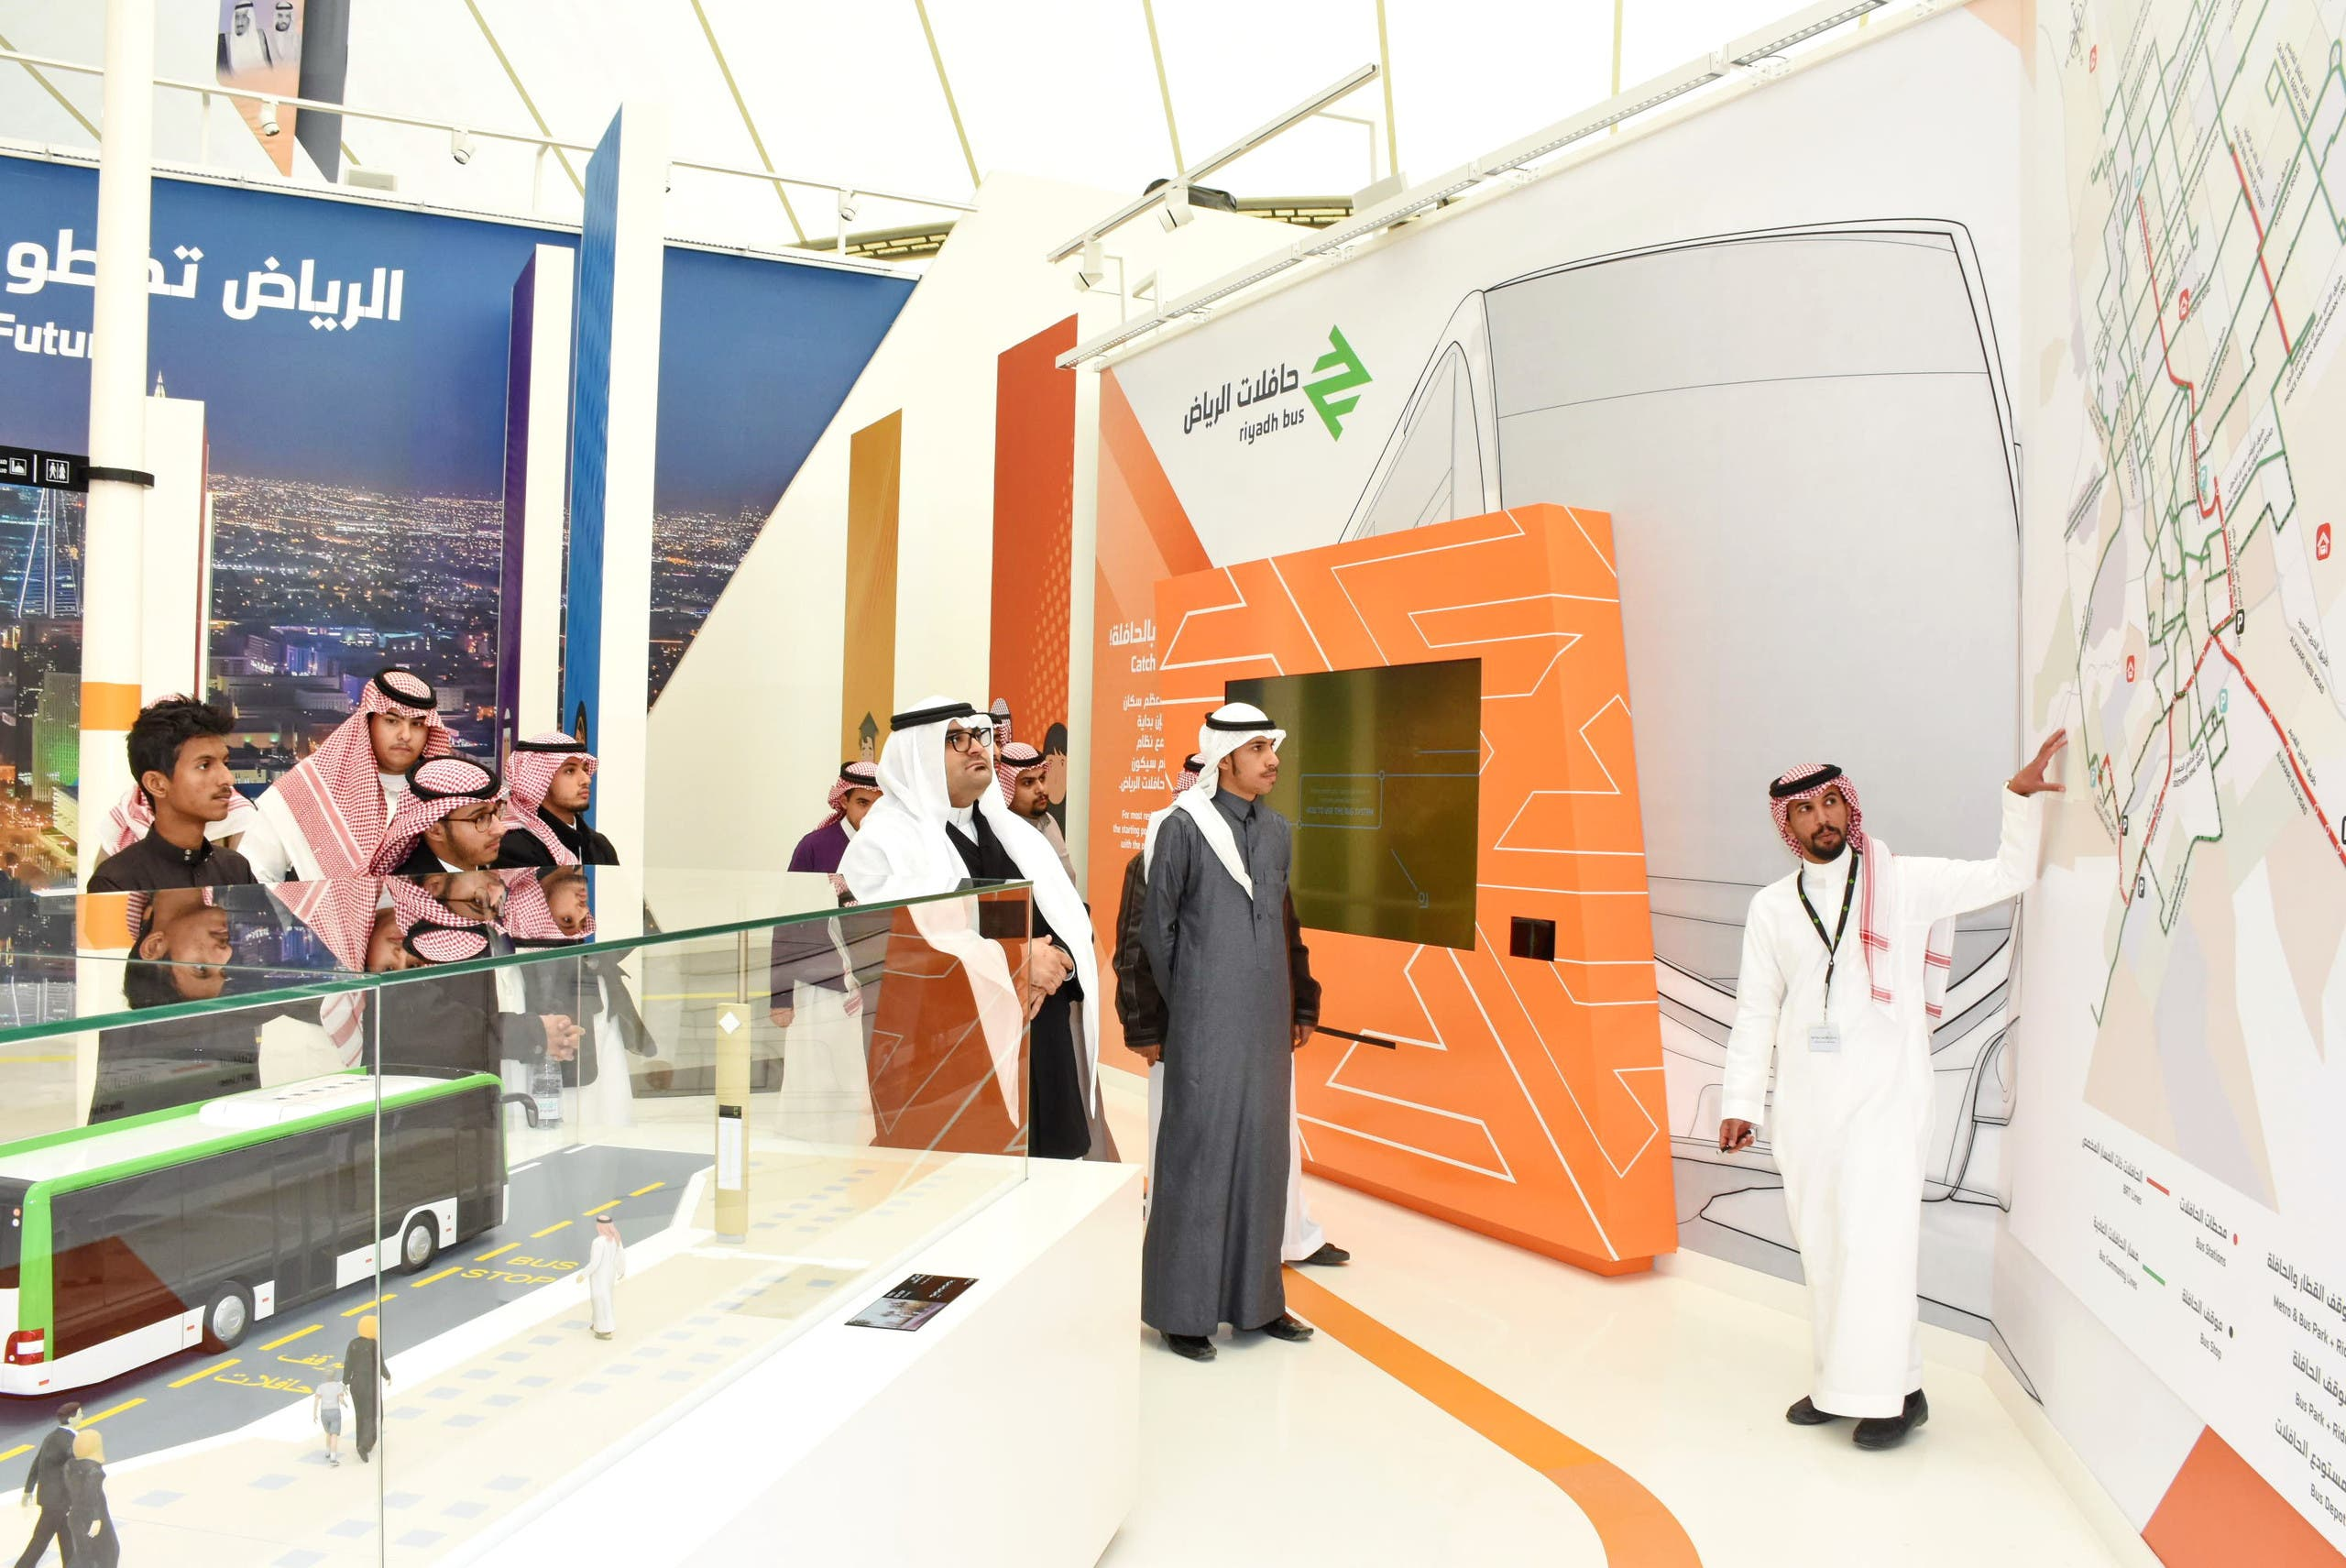 The exhibition includes mock ups for future buses that users can solicit from their locations via mobile app. (Supplied)